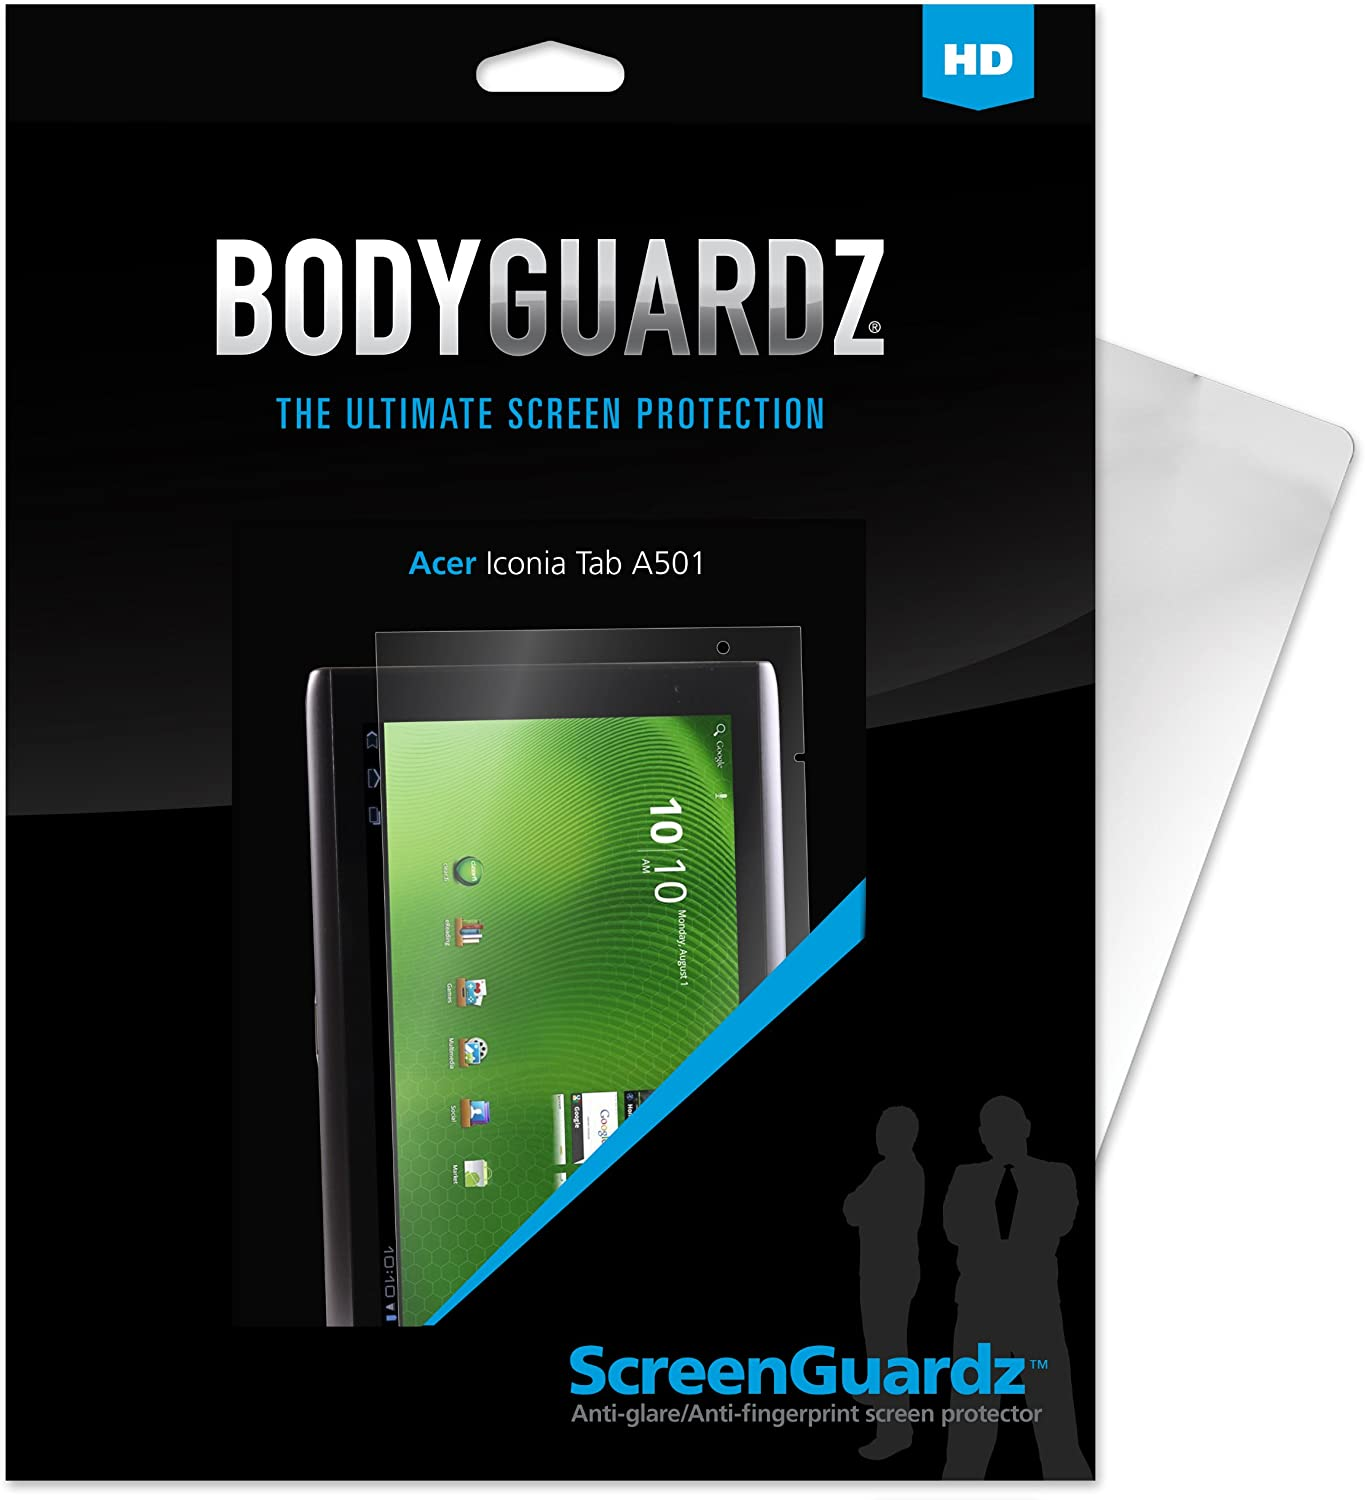 BodyGuardz BZ-HAT5-0911 HD Anti-Glare Screen Protection for Acer Iconia Tab A501